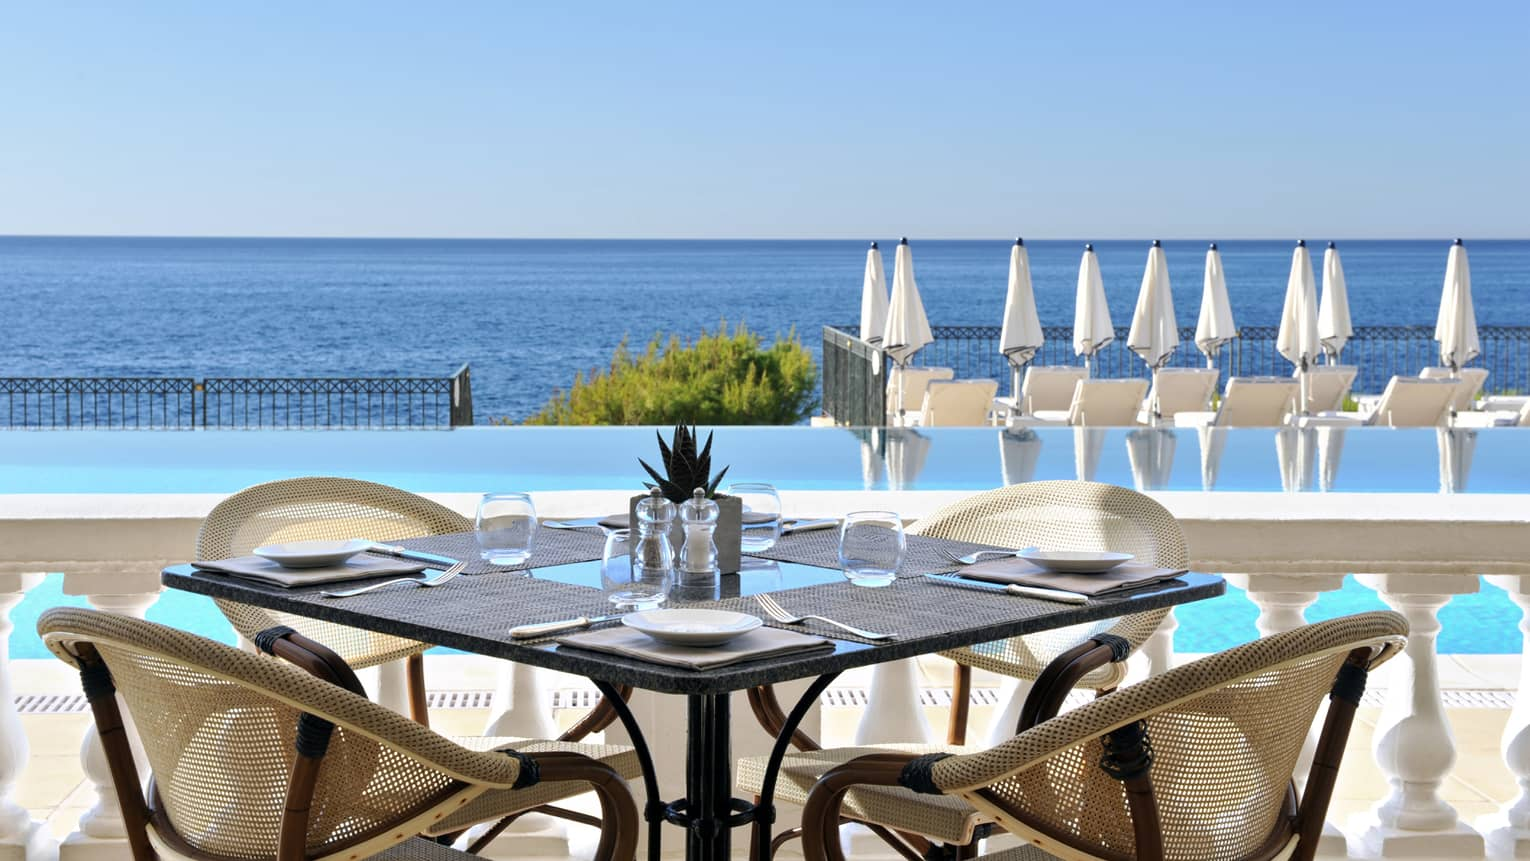 Club Dauphin patio table, chairs by outdoor swimming pool, blue sea